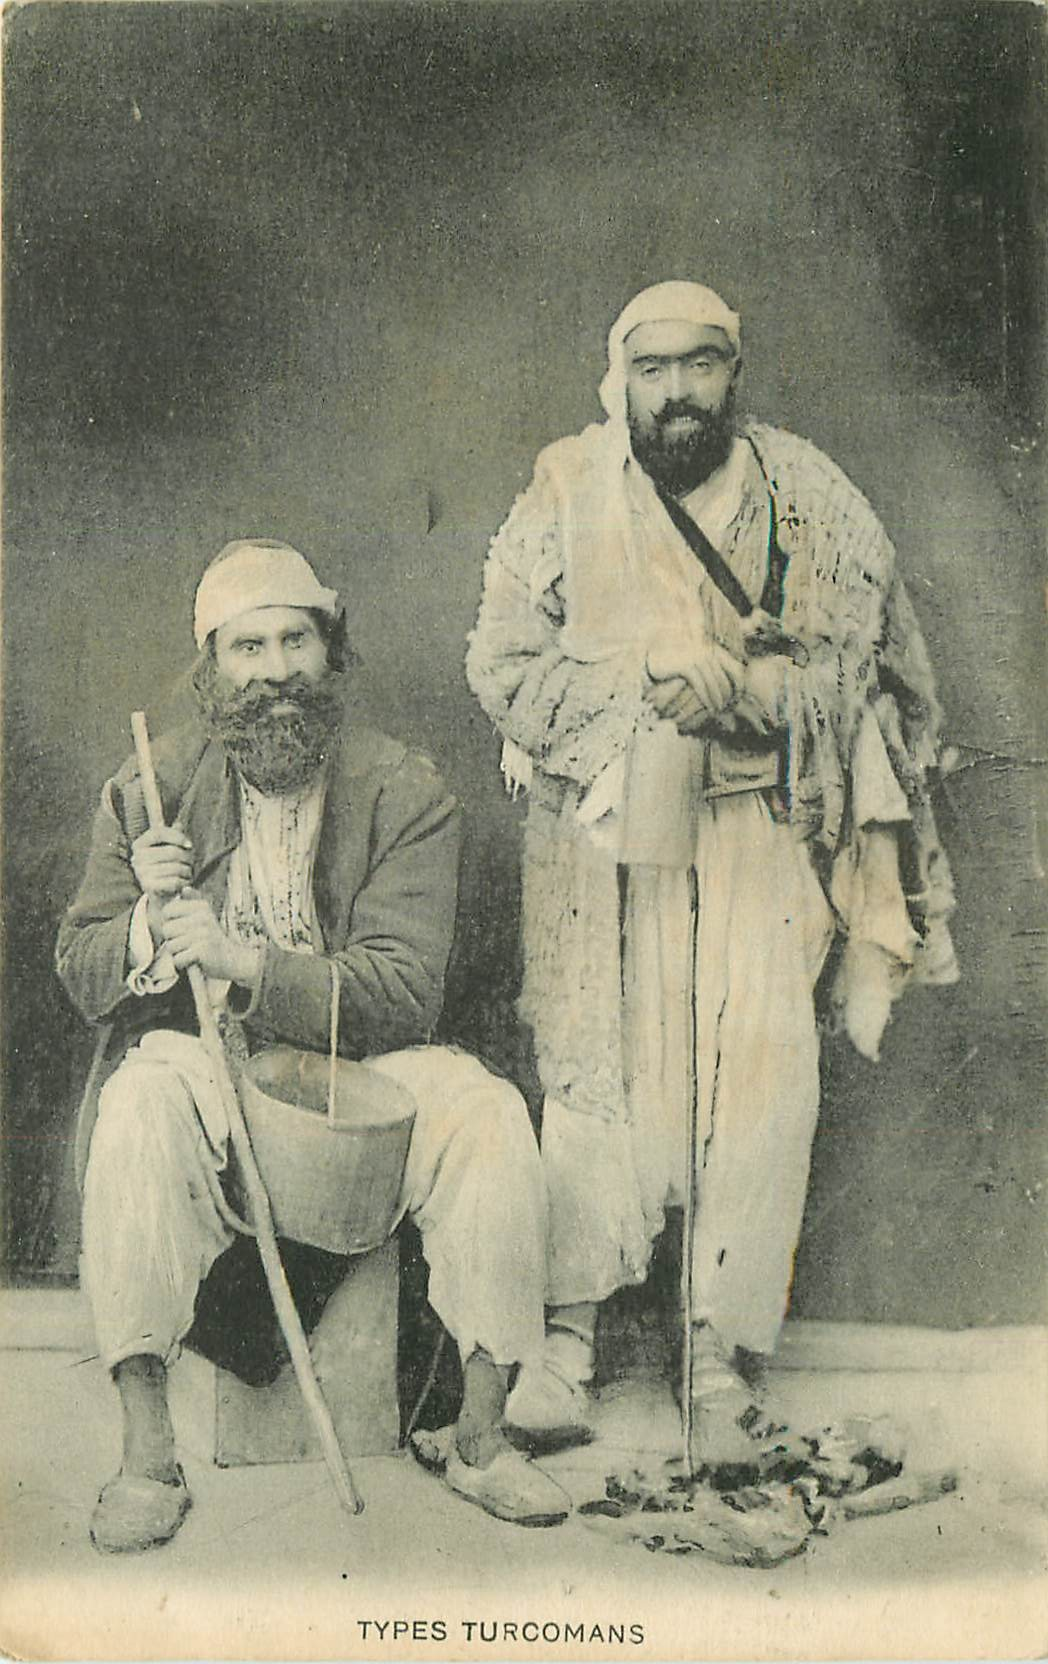 TURQUIE. Types Turcomans 1922